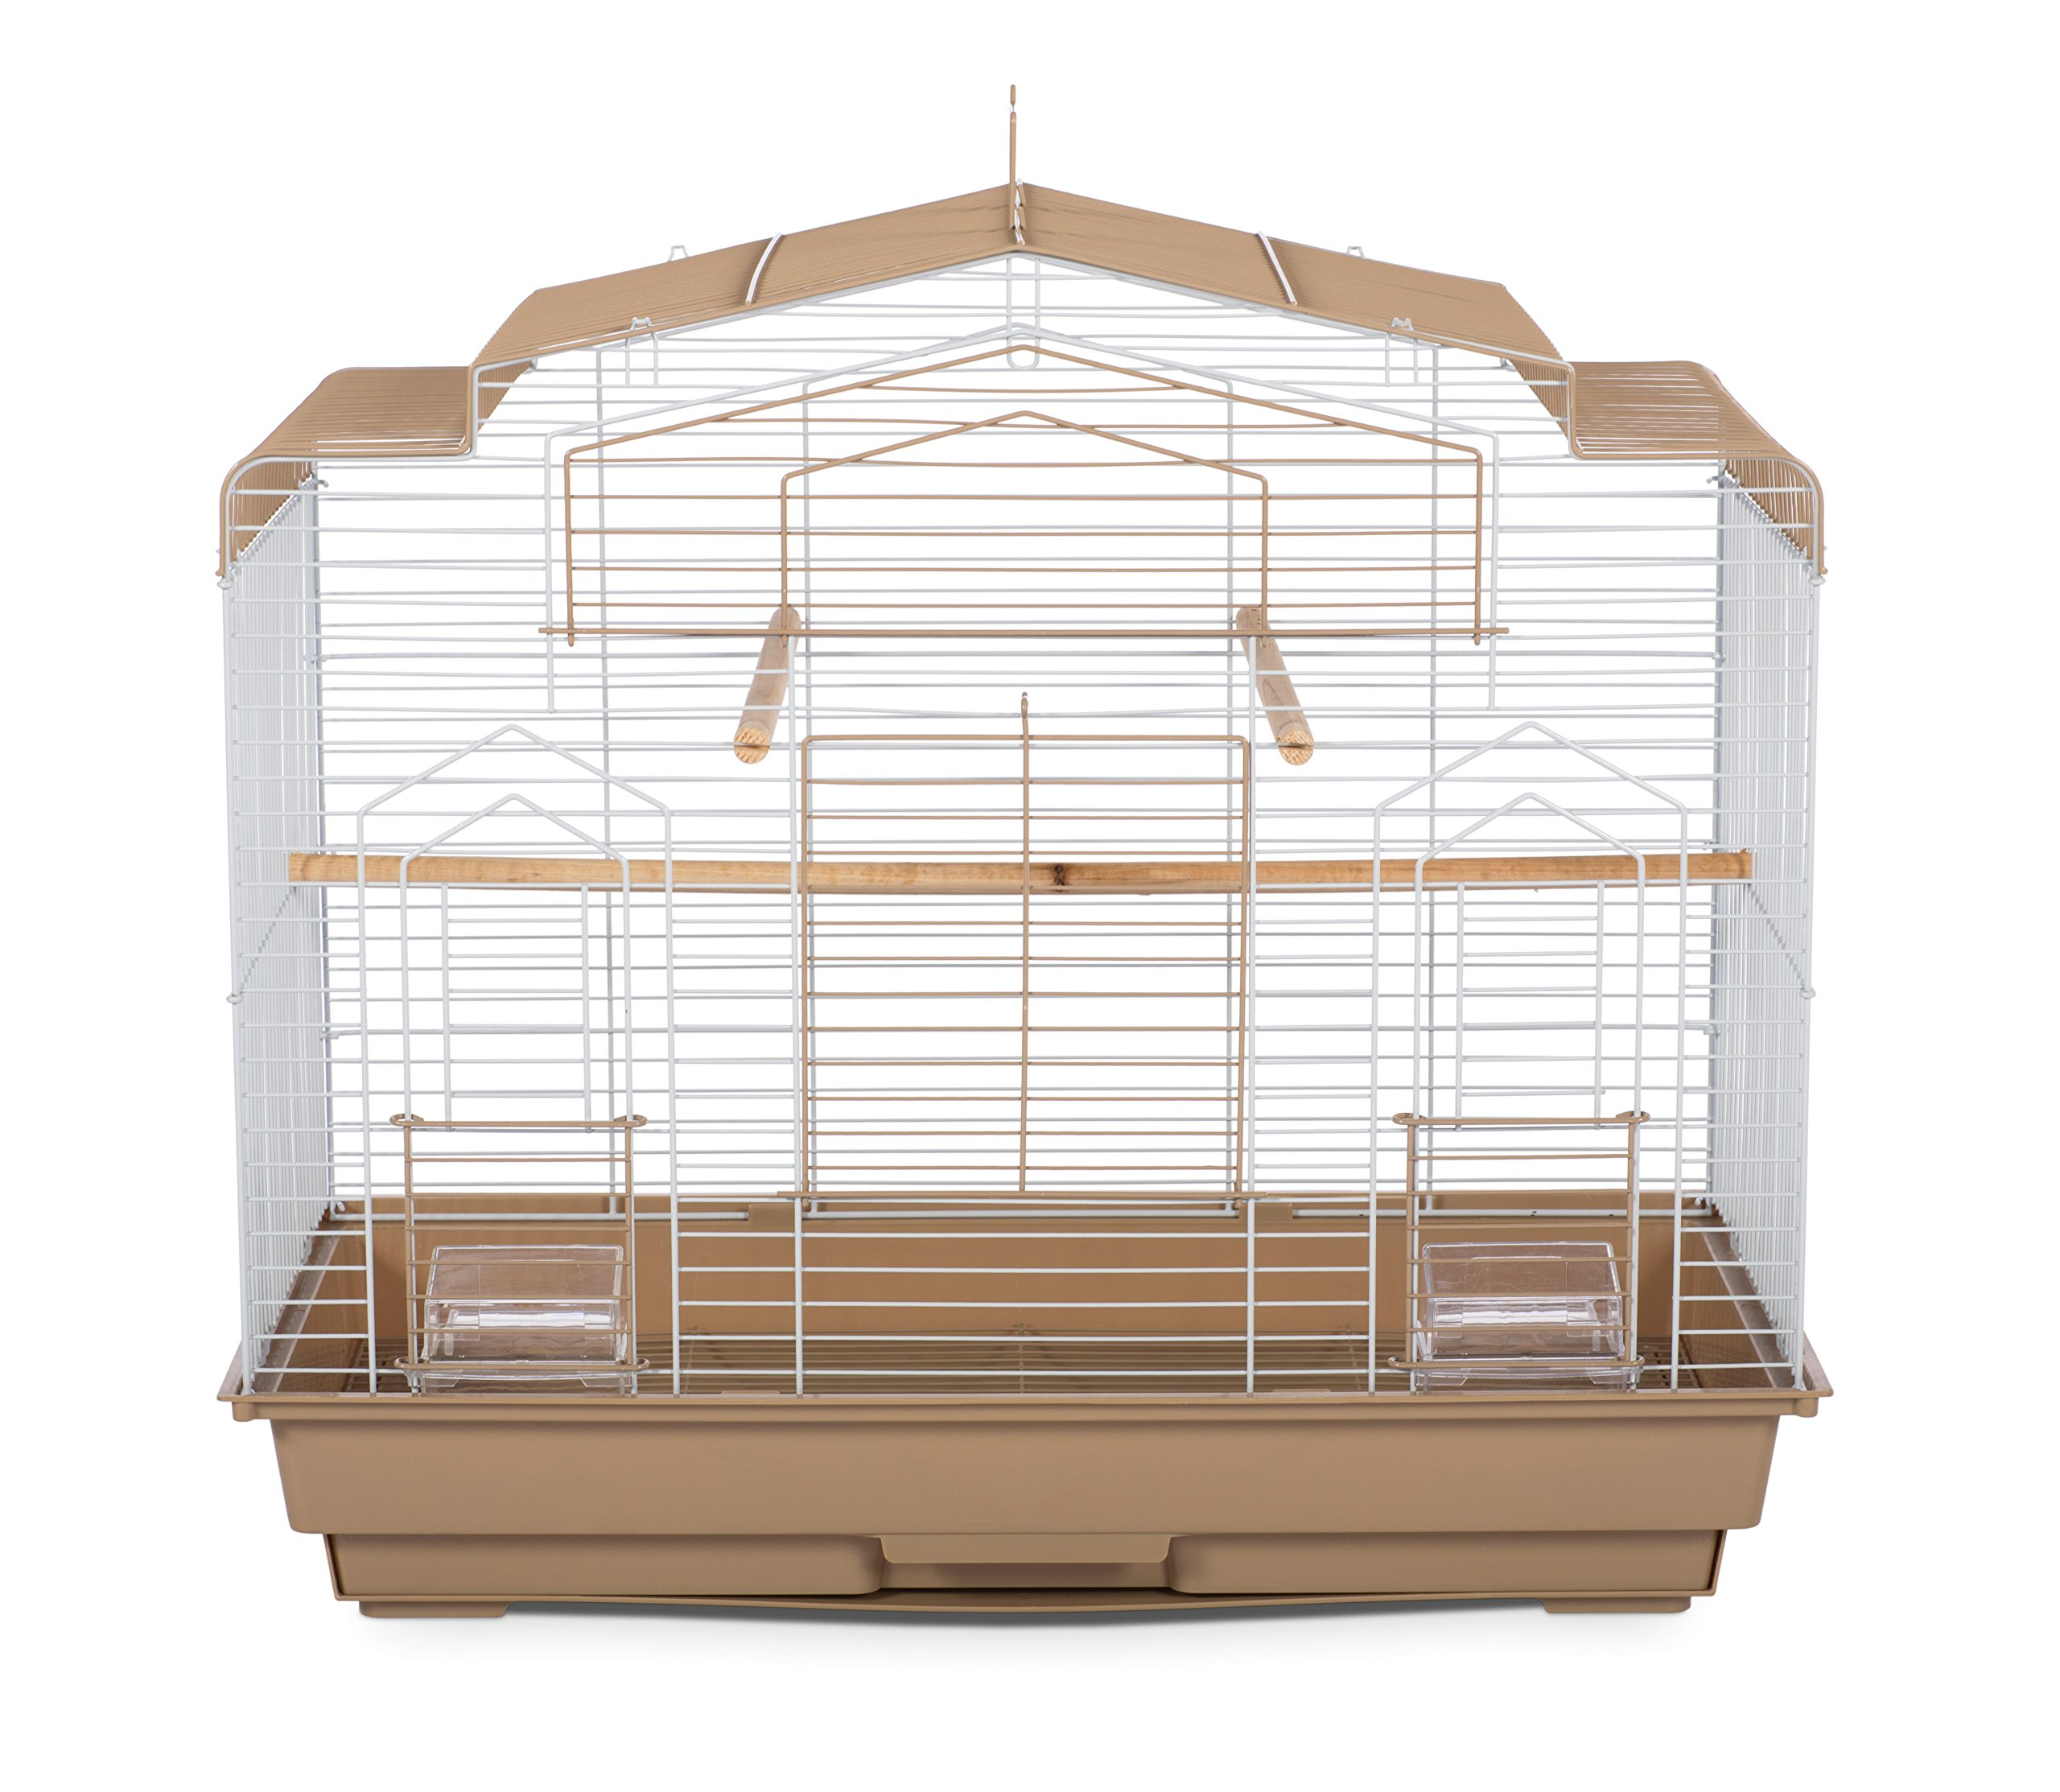 Prevue Pet Products SP50051 Barn Style Bird Cage, Brown/White by Prevue Pet Products